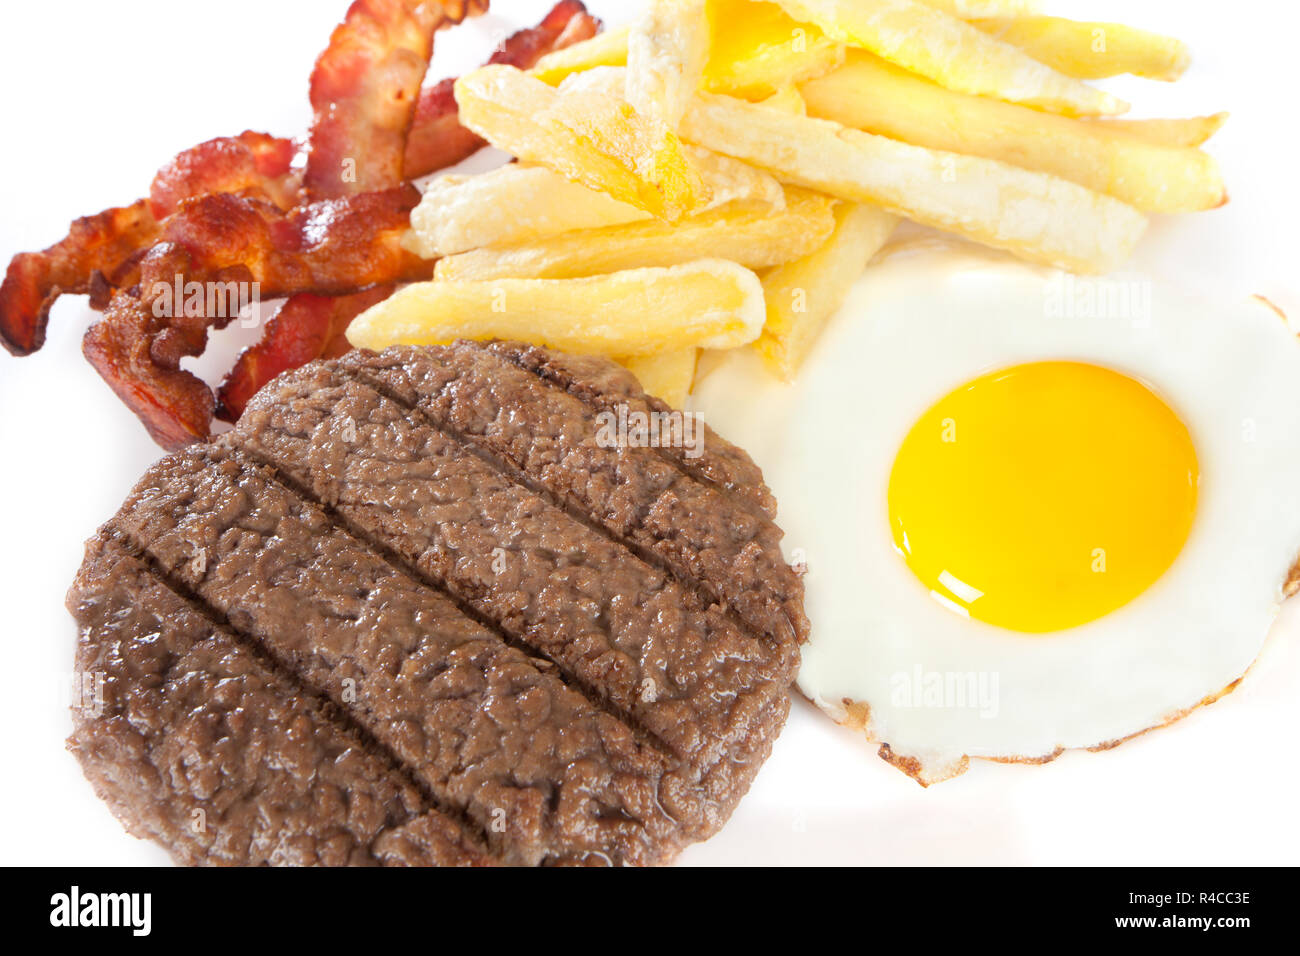 close up Junk food with high levels of calories and cholesterol - Stock Image